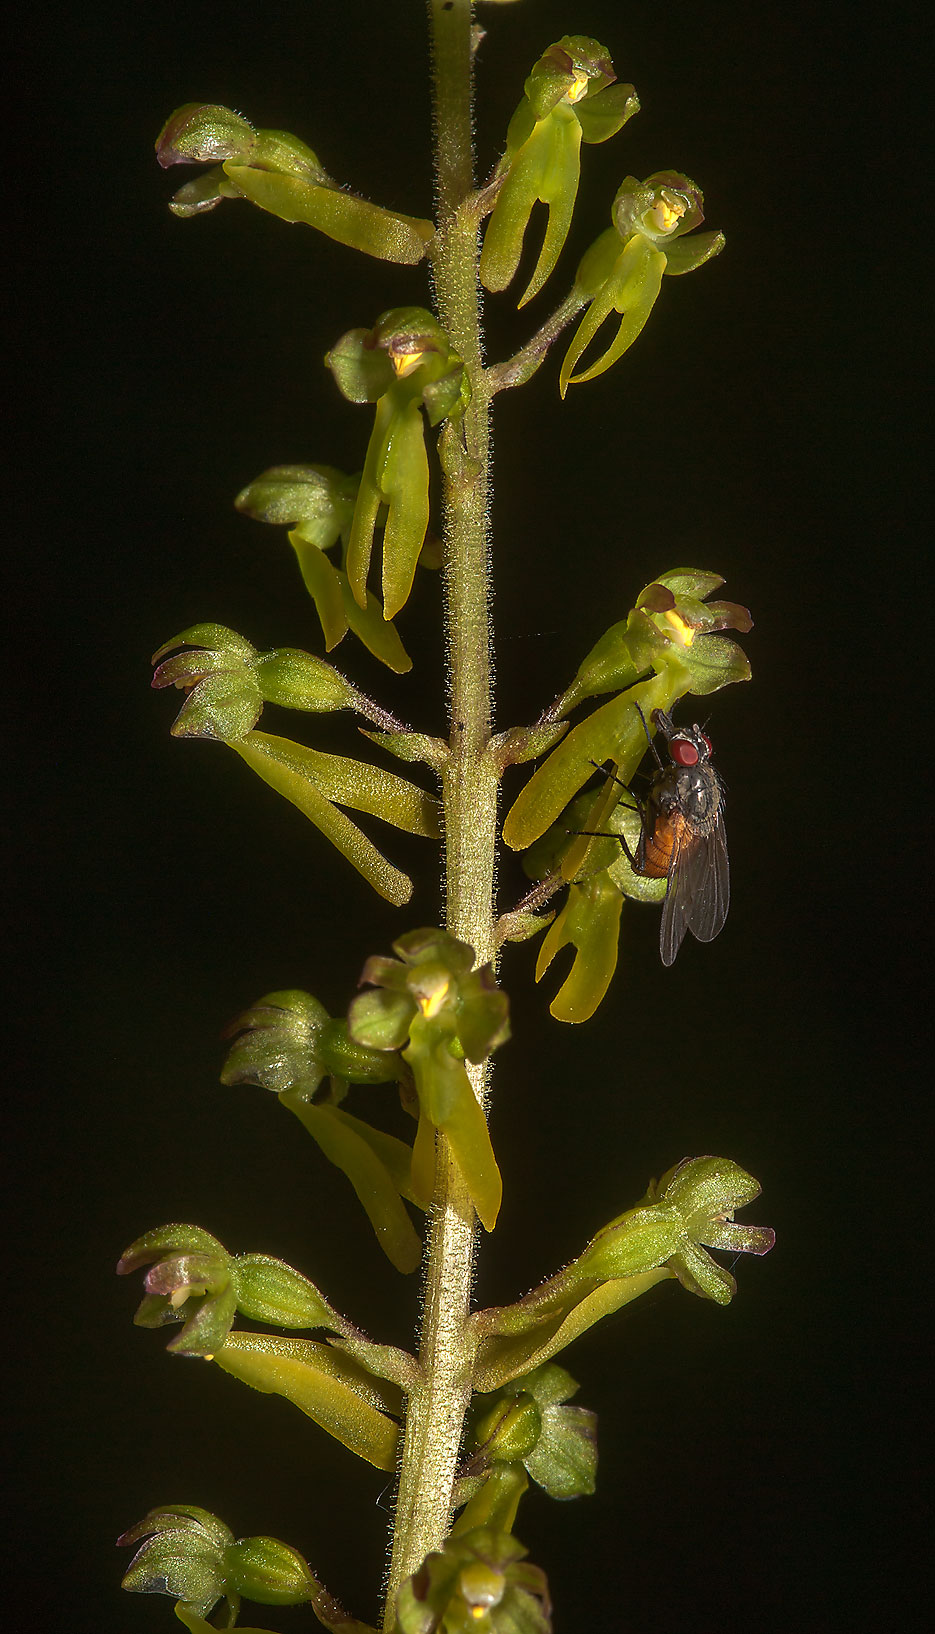 Flowers of Twayblade orchid (Neottia or Listera...a suburb of St.Petersburg, Russia